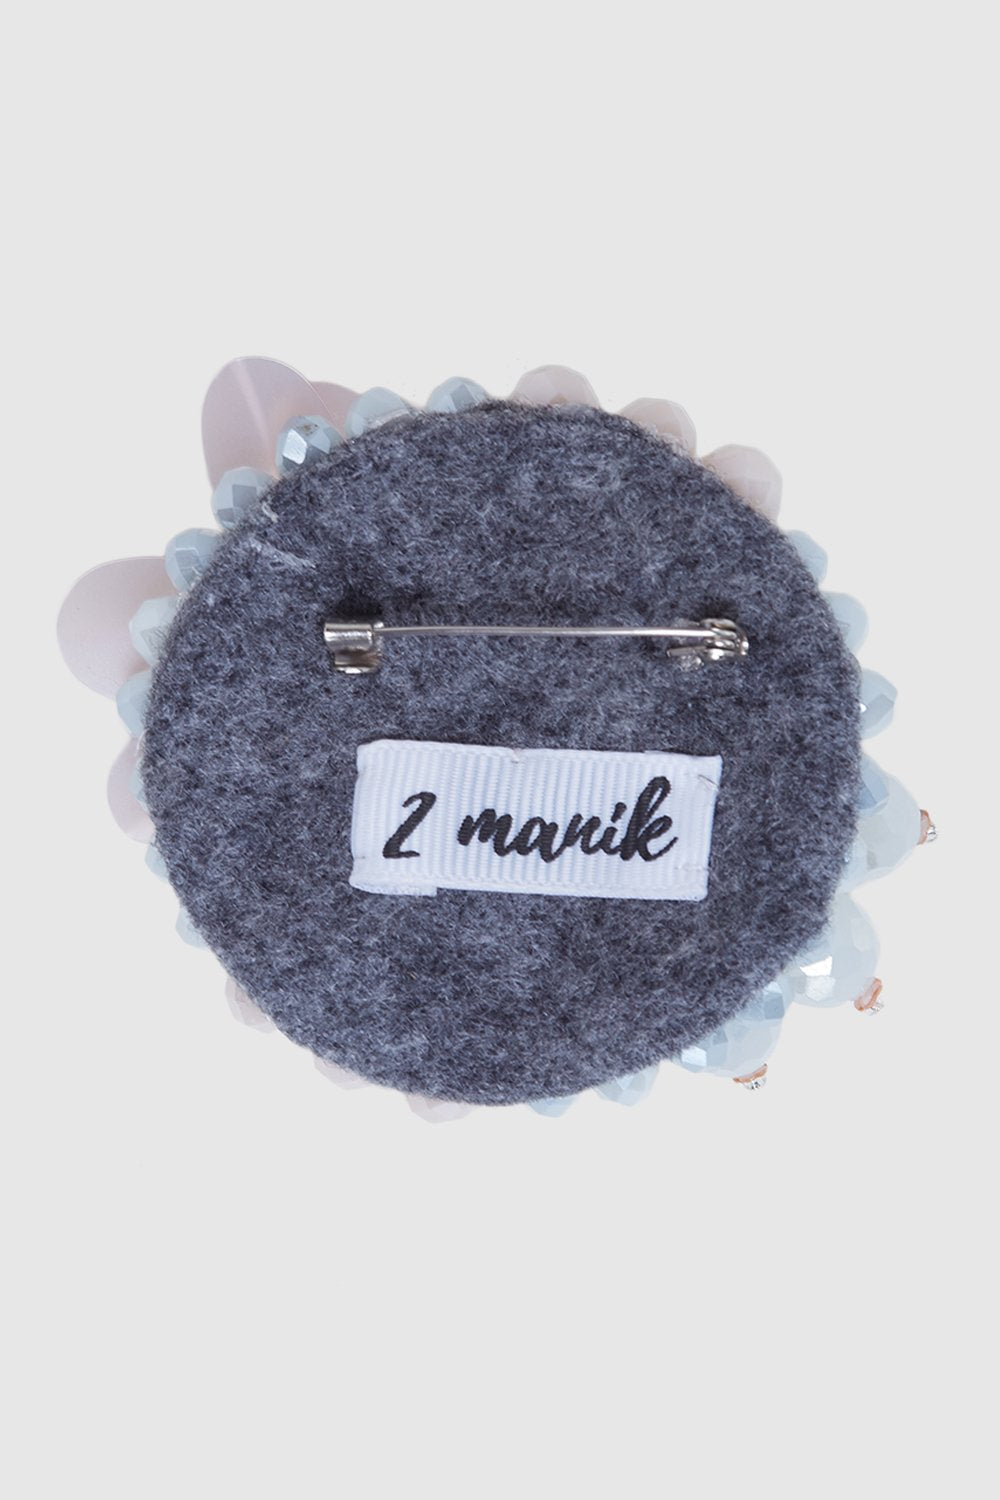 Dua Manik Hana Brooch in Grey